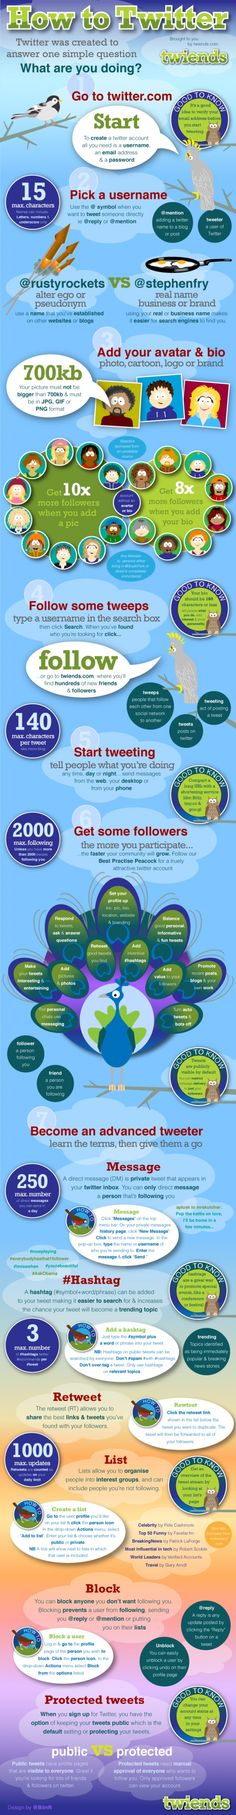 A great #Infographic: Getting #Twitter followers #socialmedia